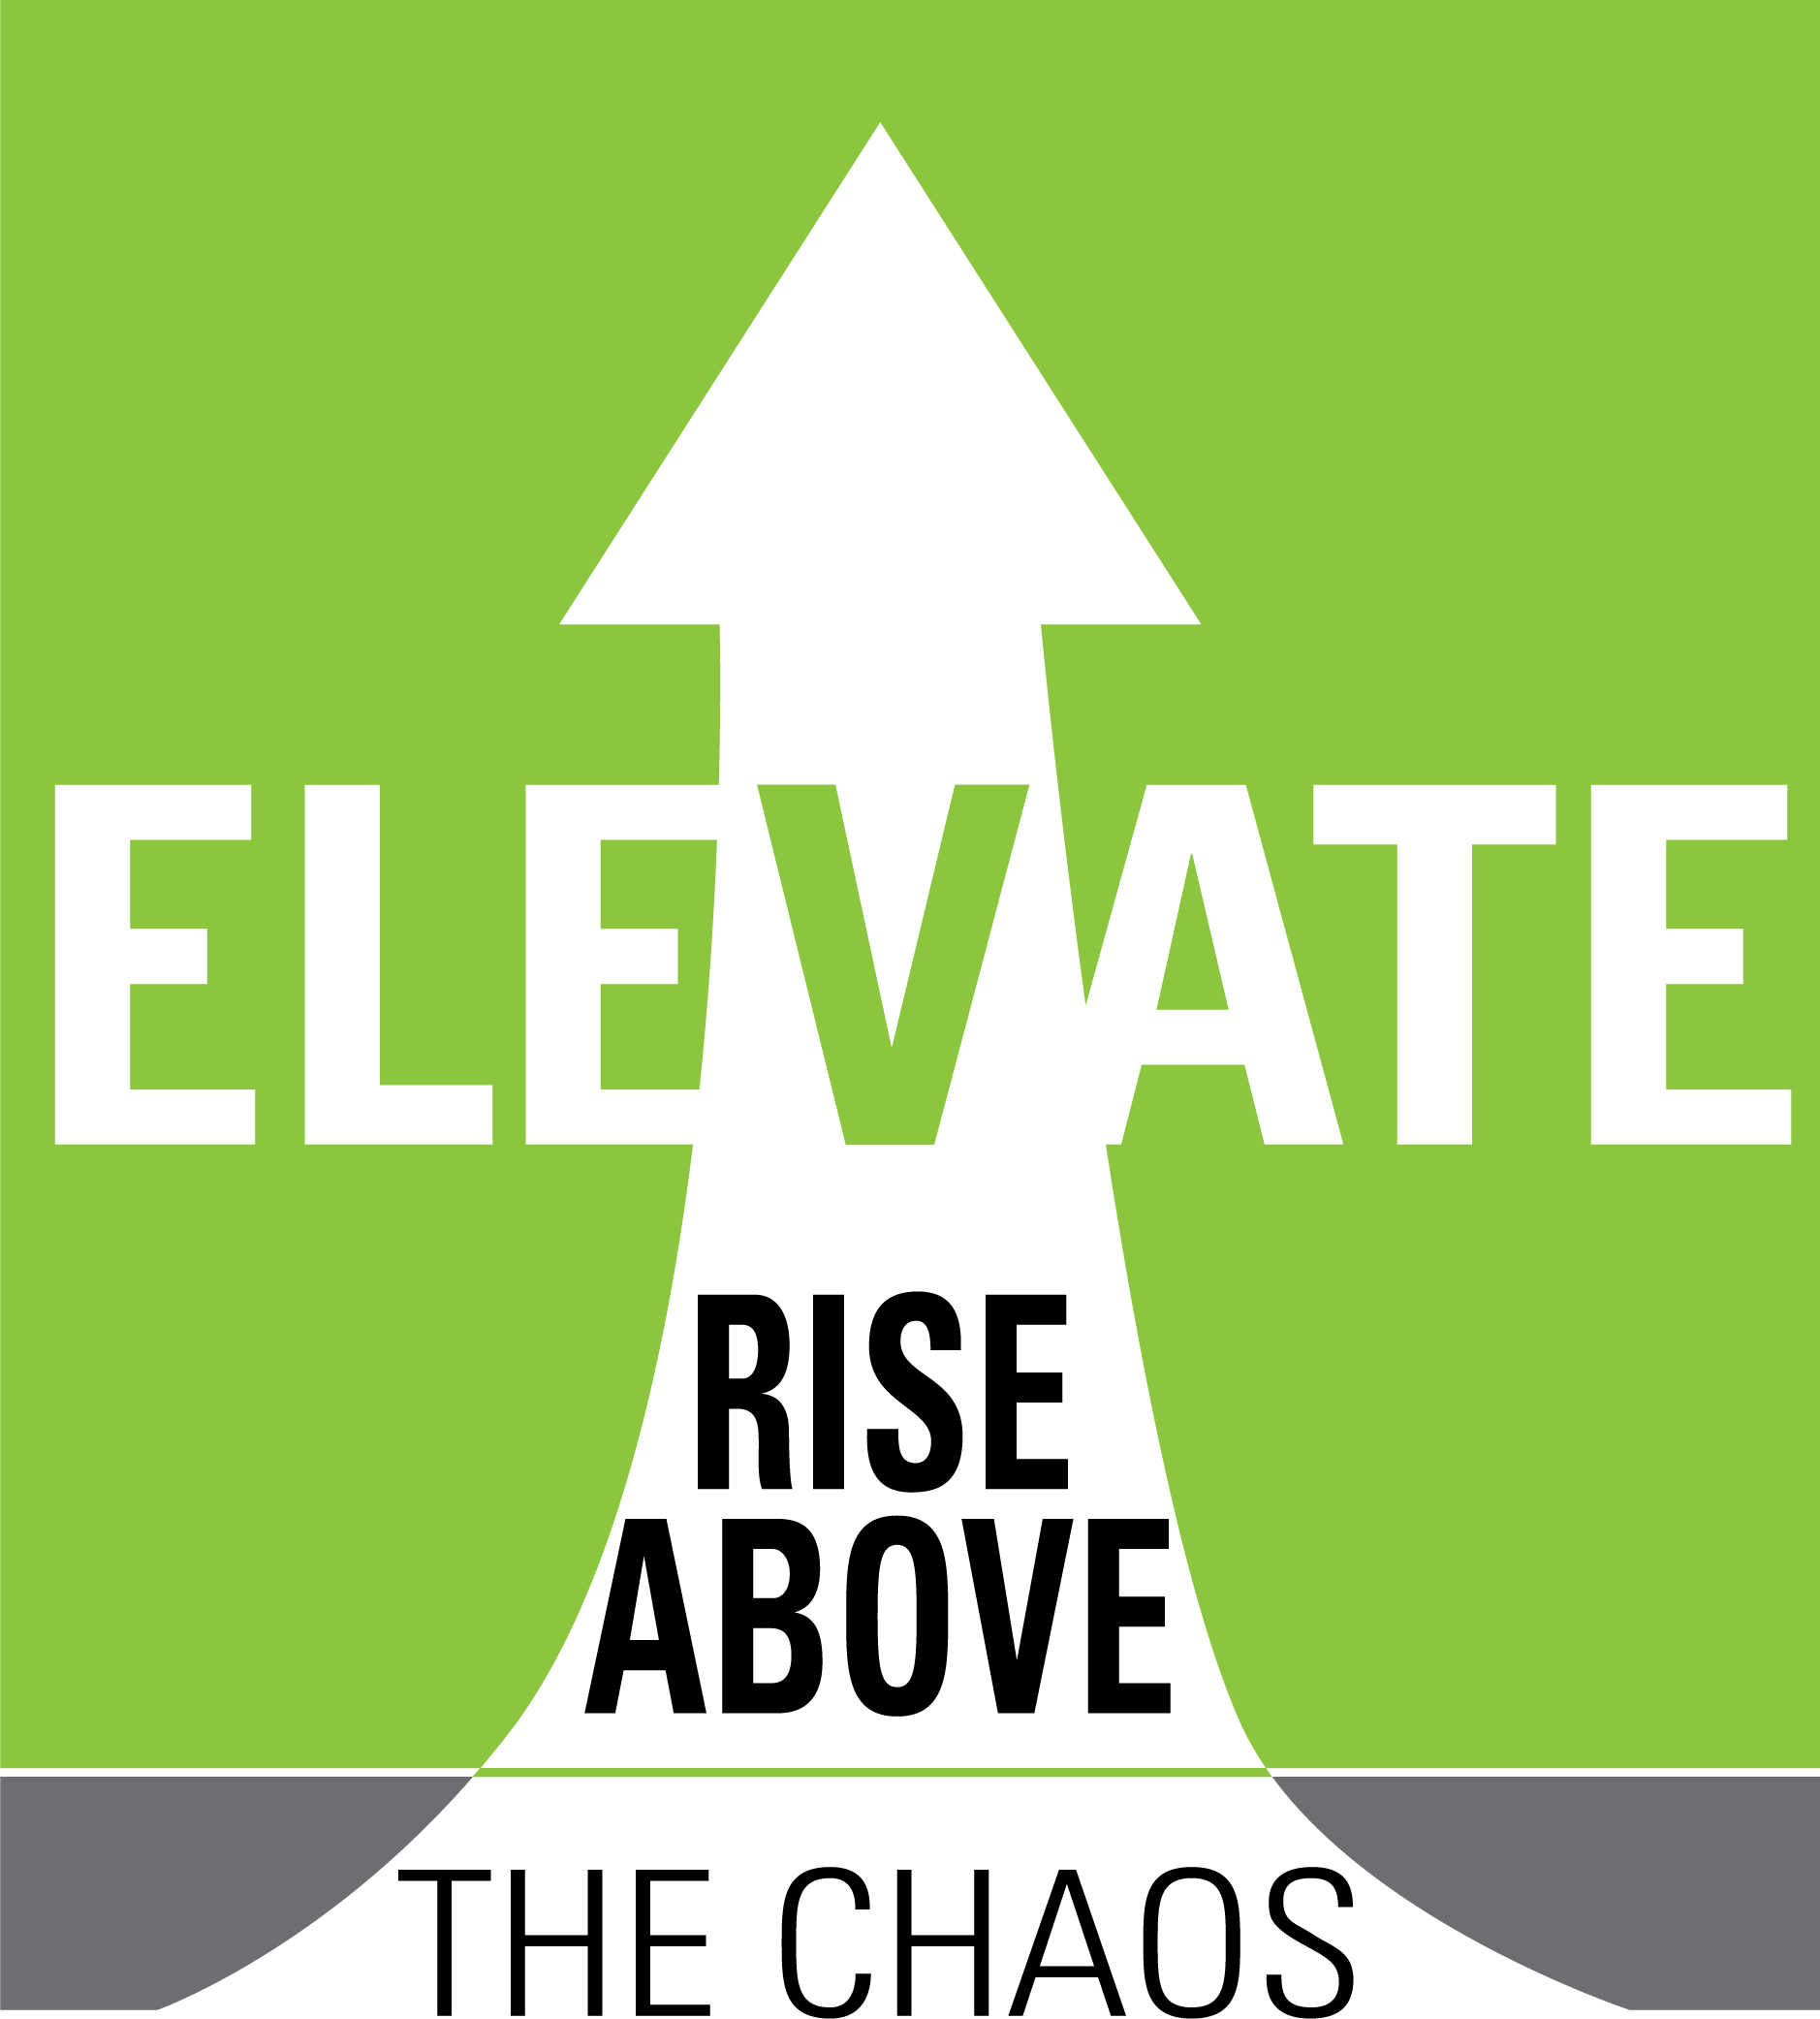 Elevate_color.png